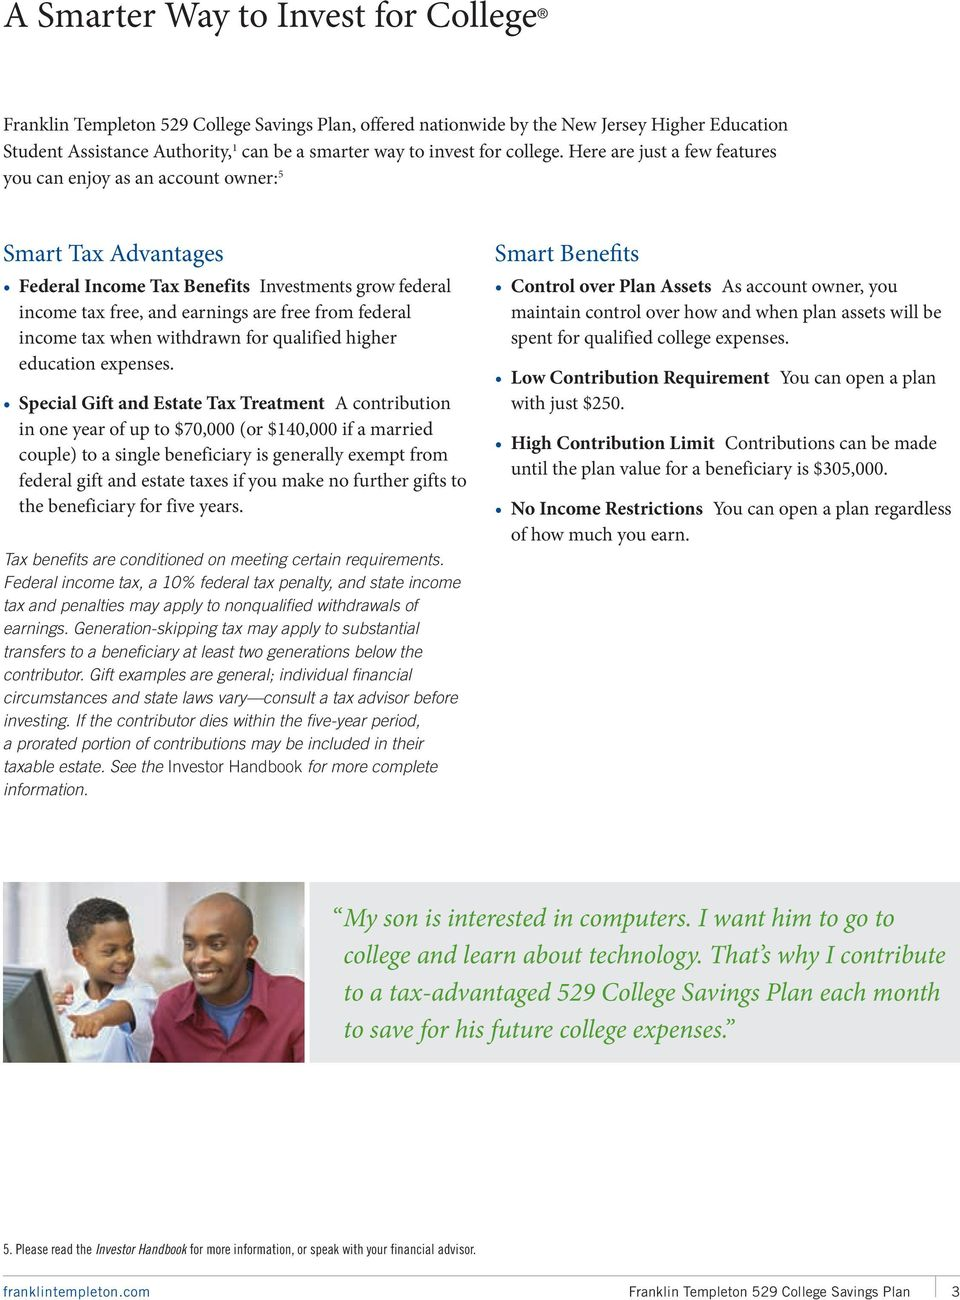 Franklin Templeton 529 College Savings Plan OFFERED NATIONWIDE BY